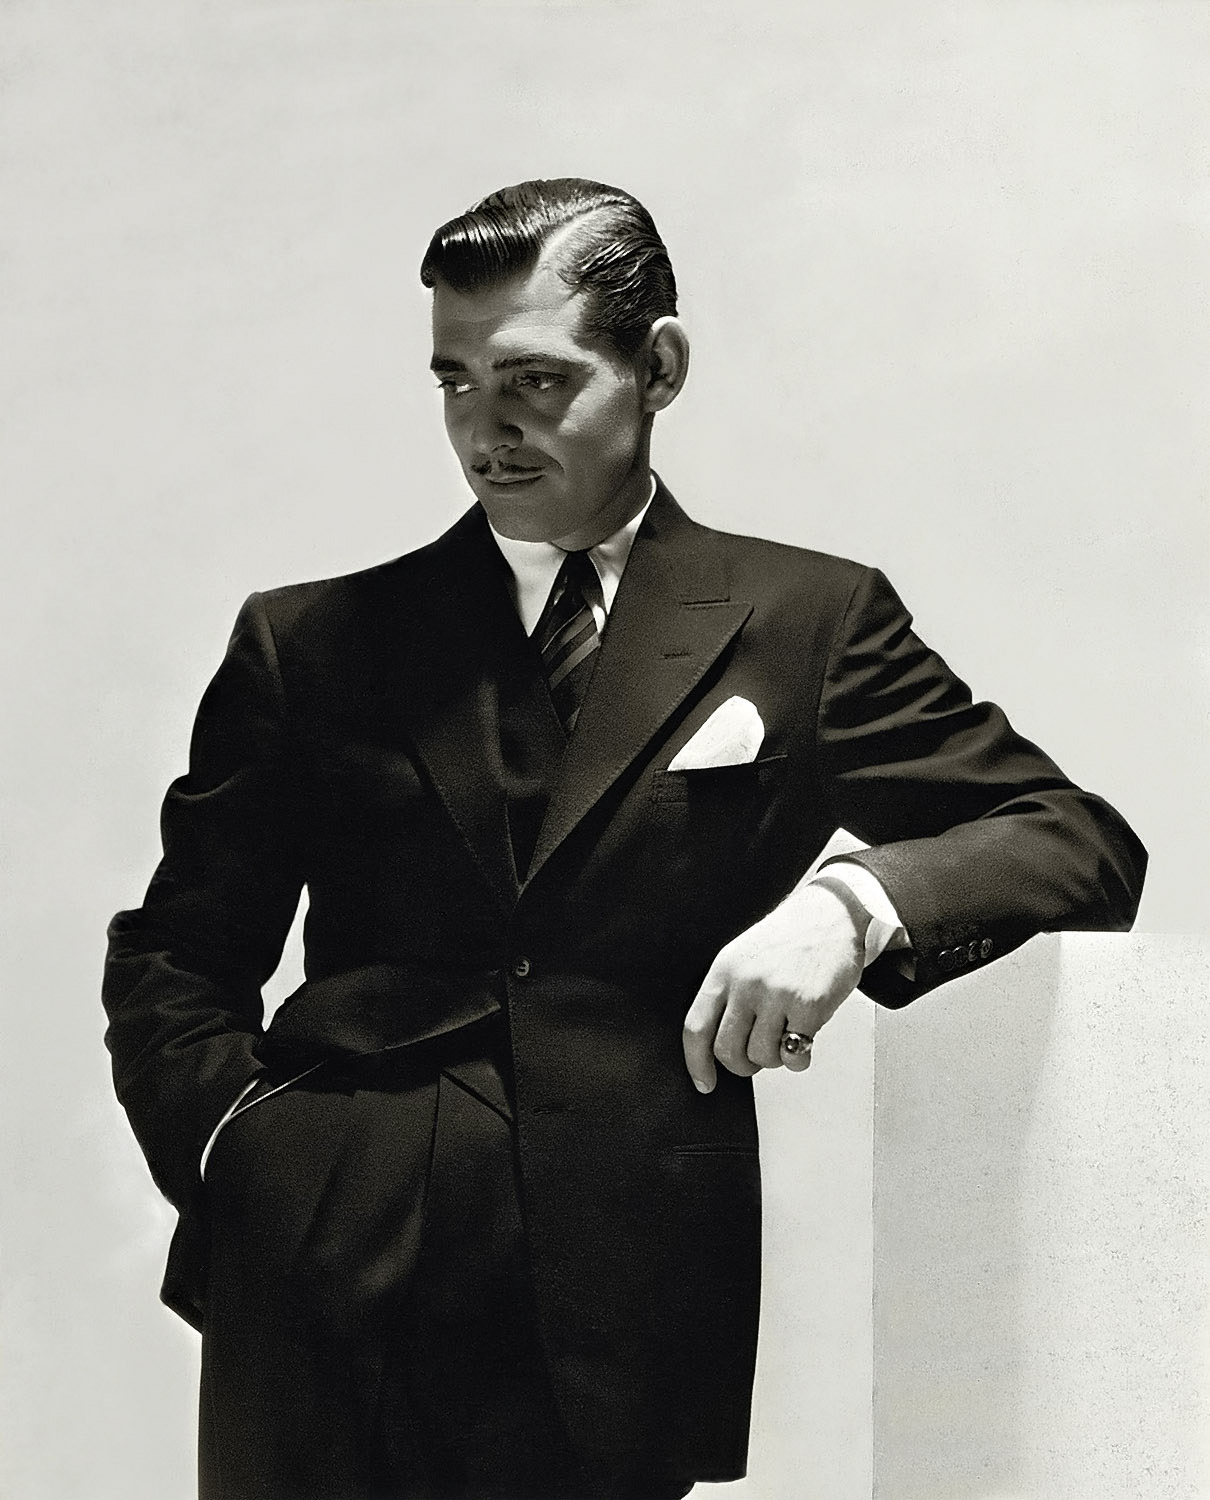 ricksginjoint:  Find more of Clark Gable and other classic hollywood icons here